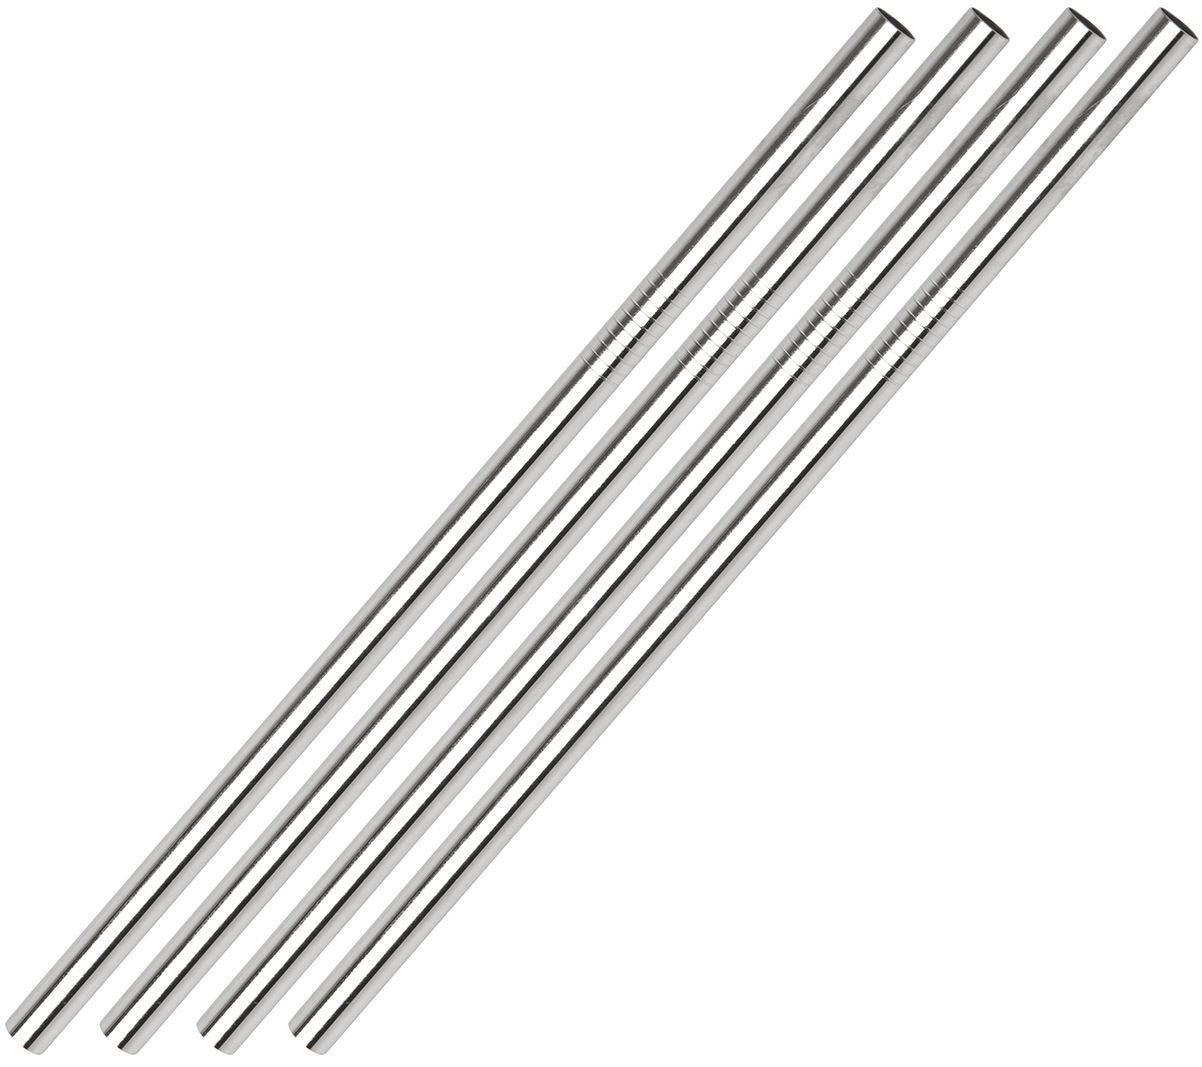 how to make stainless steel straws